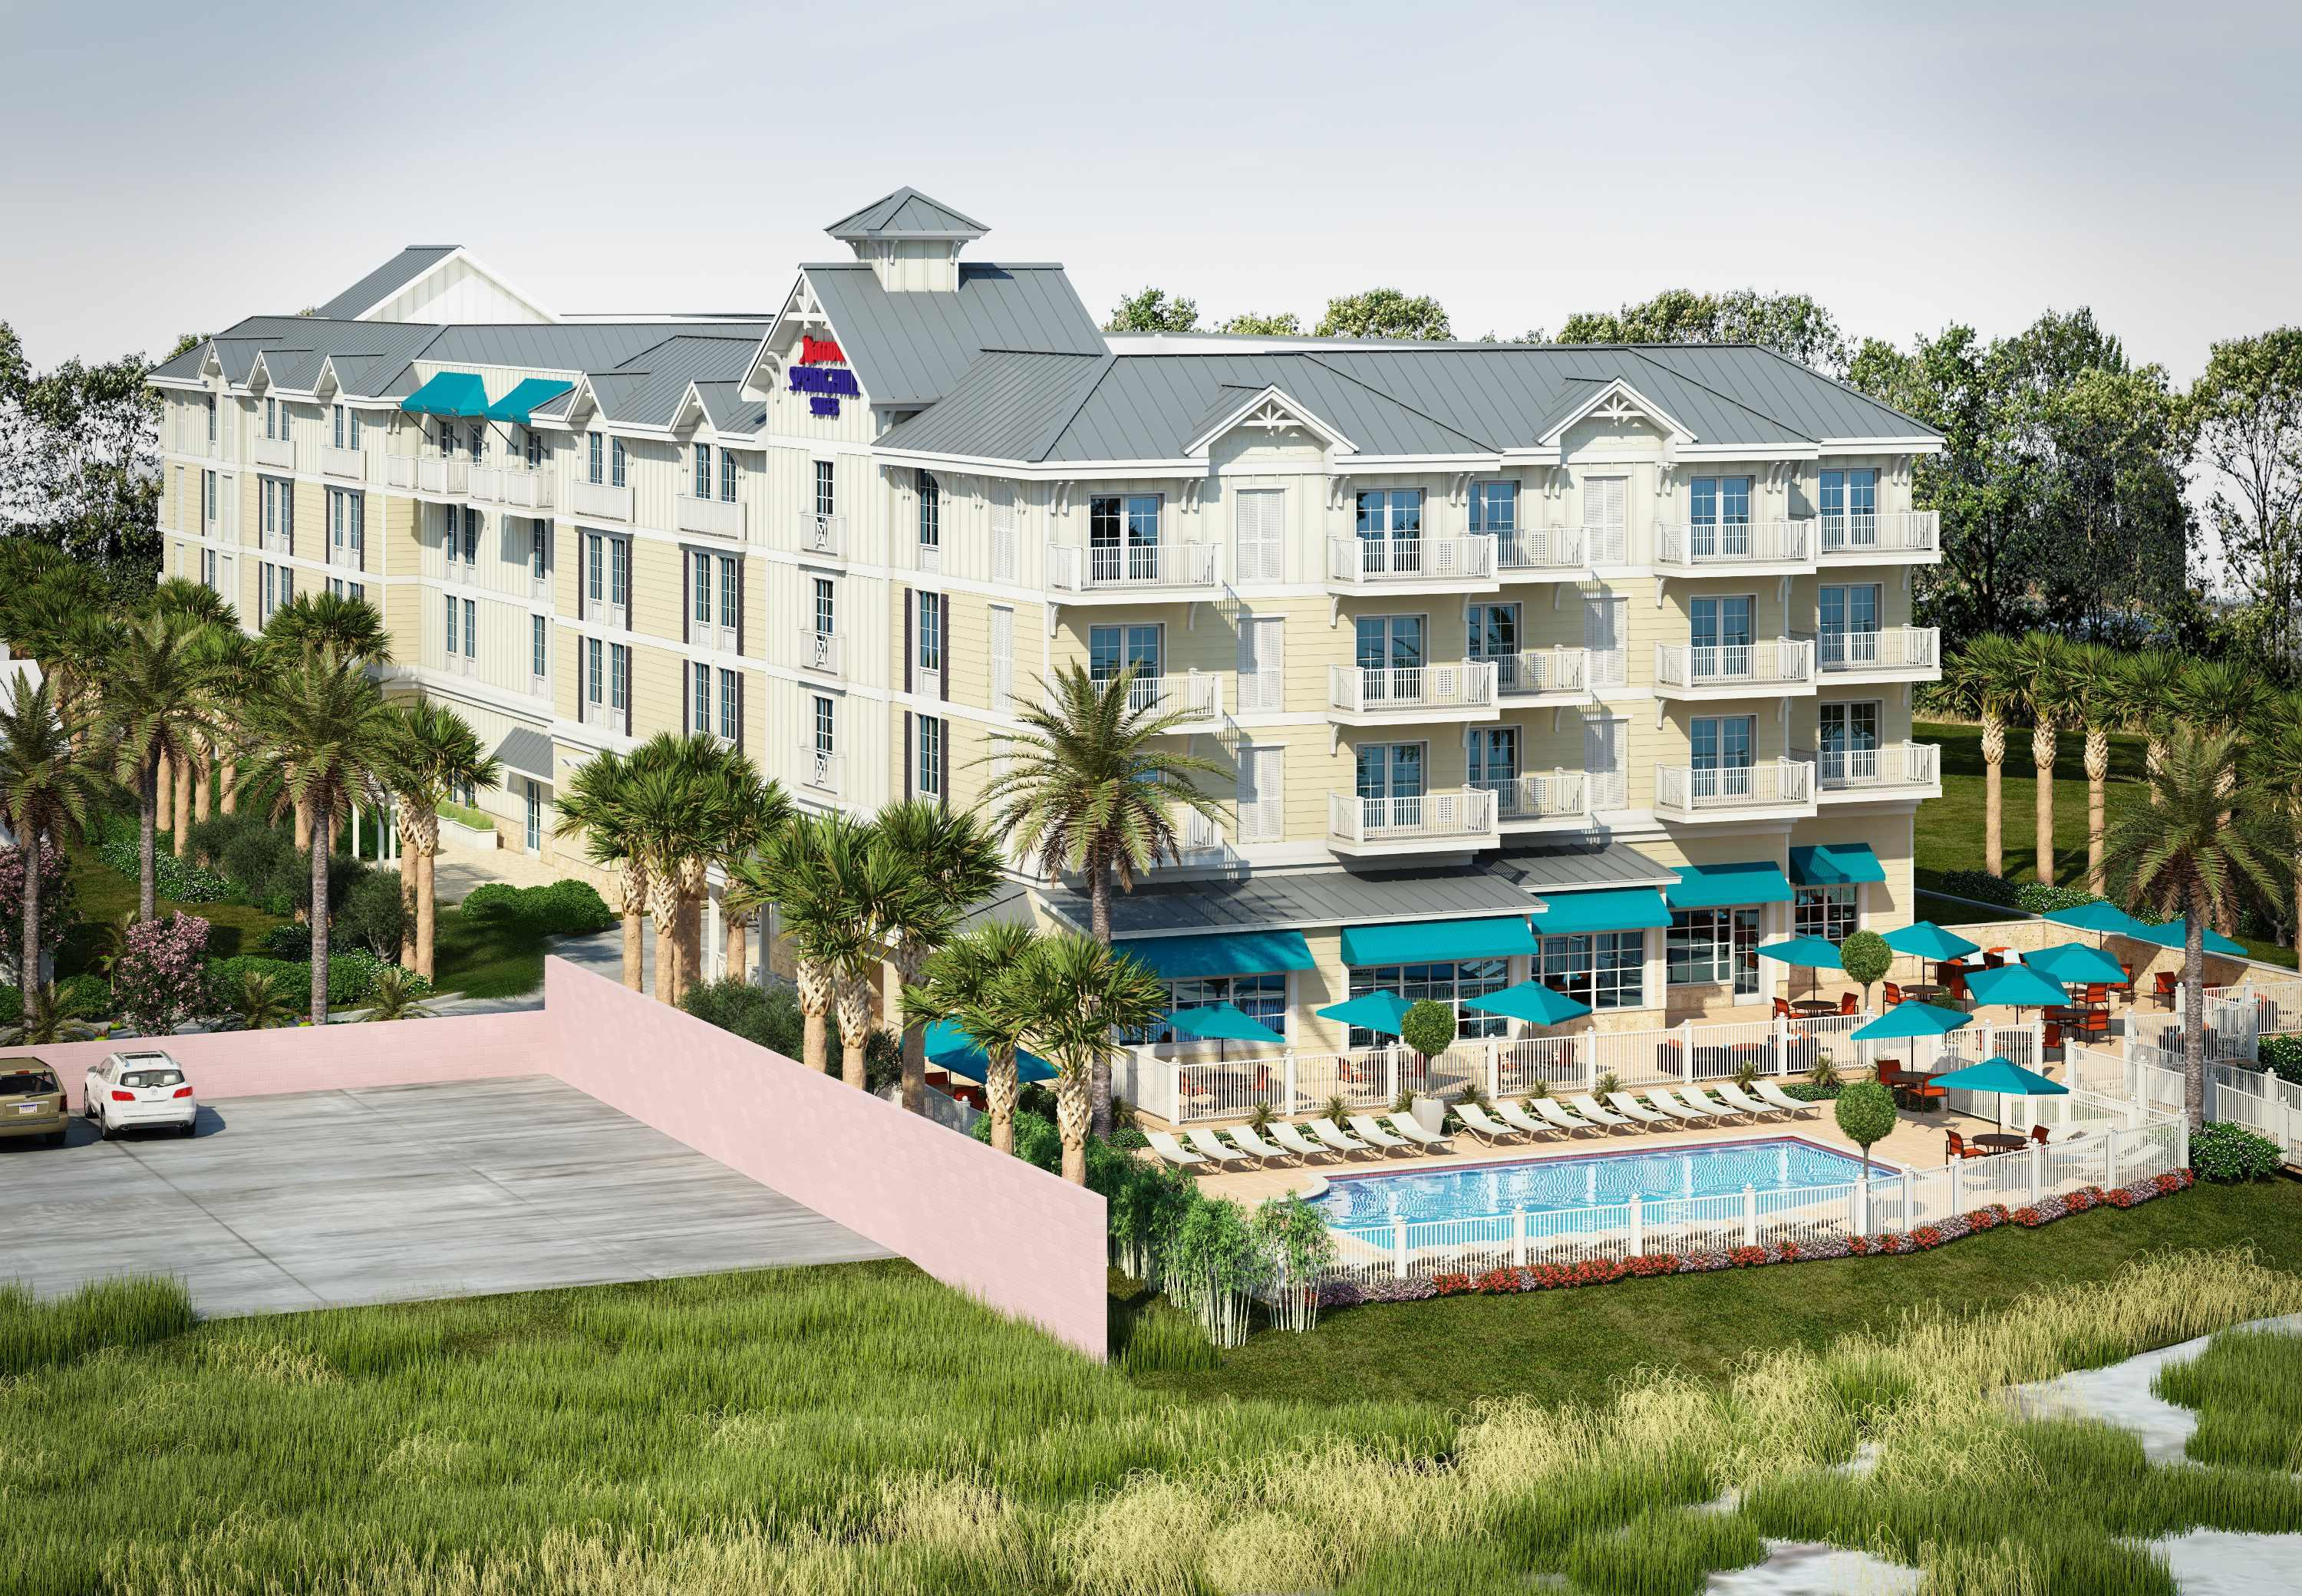 SpringHill Suites by Marriott New Smyrna Beach image 2